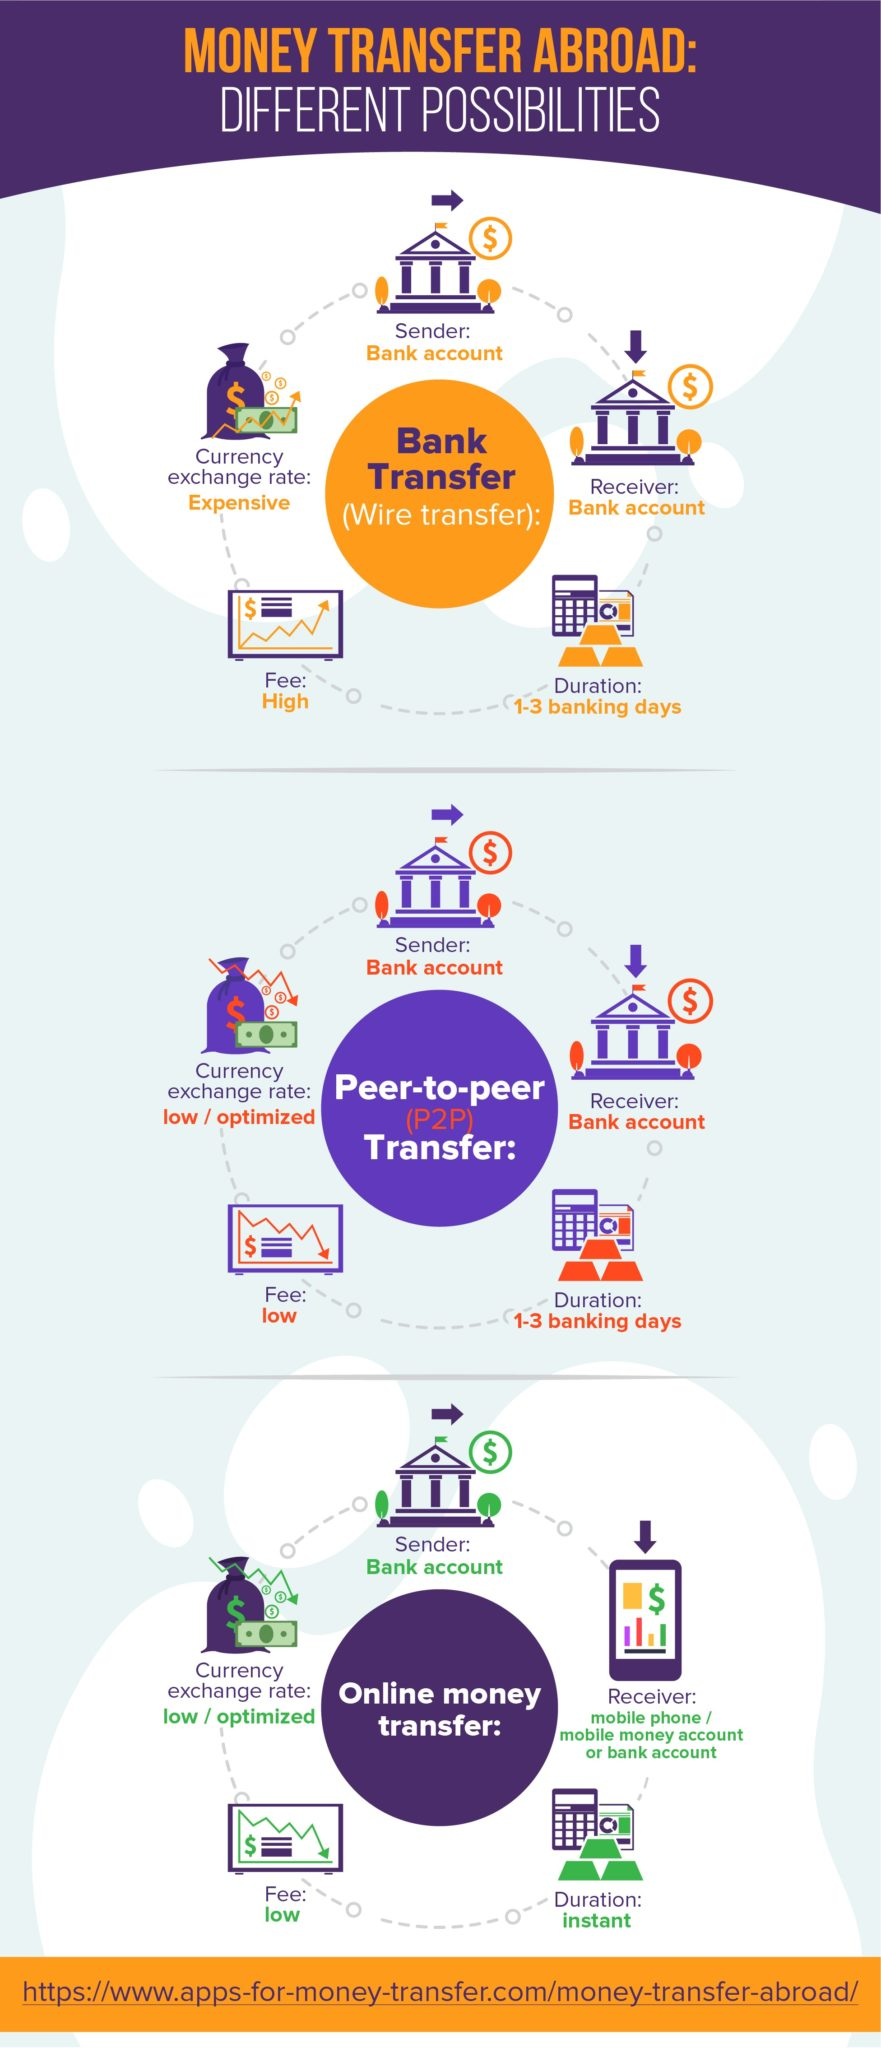 money transfer abroad different possibilities